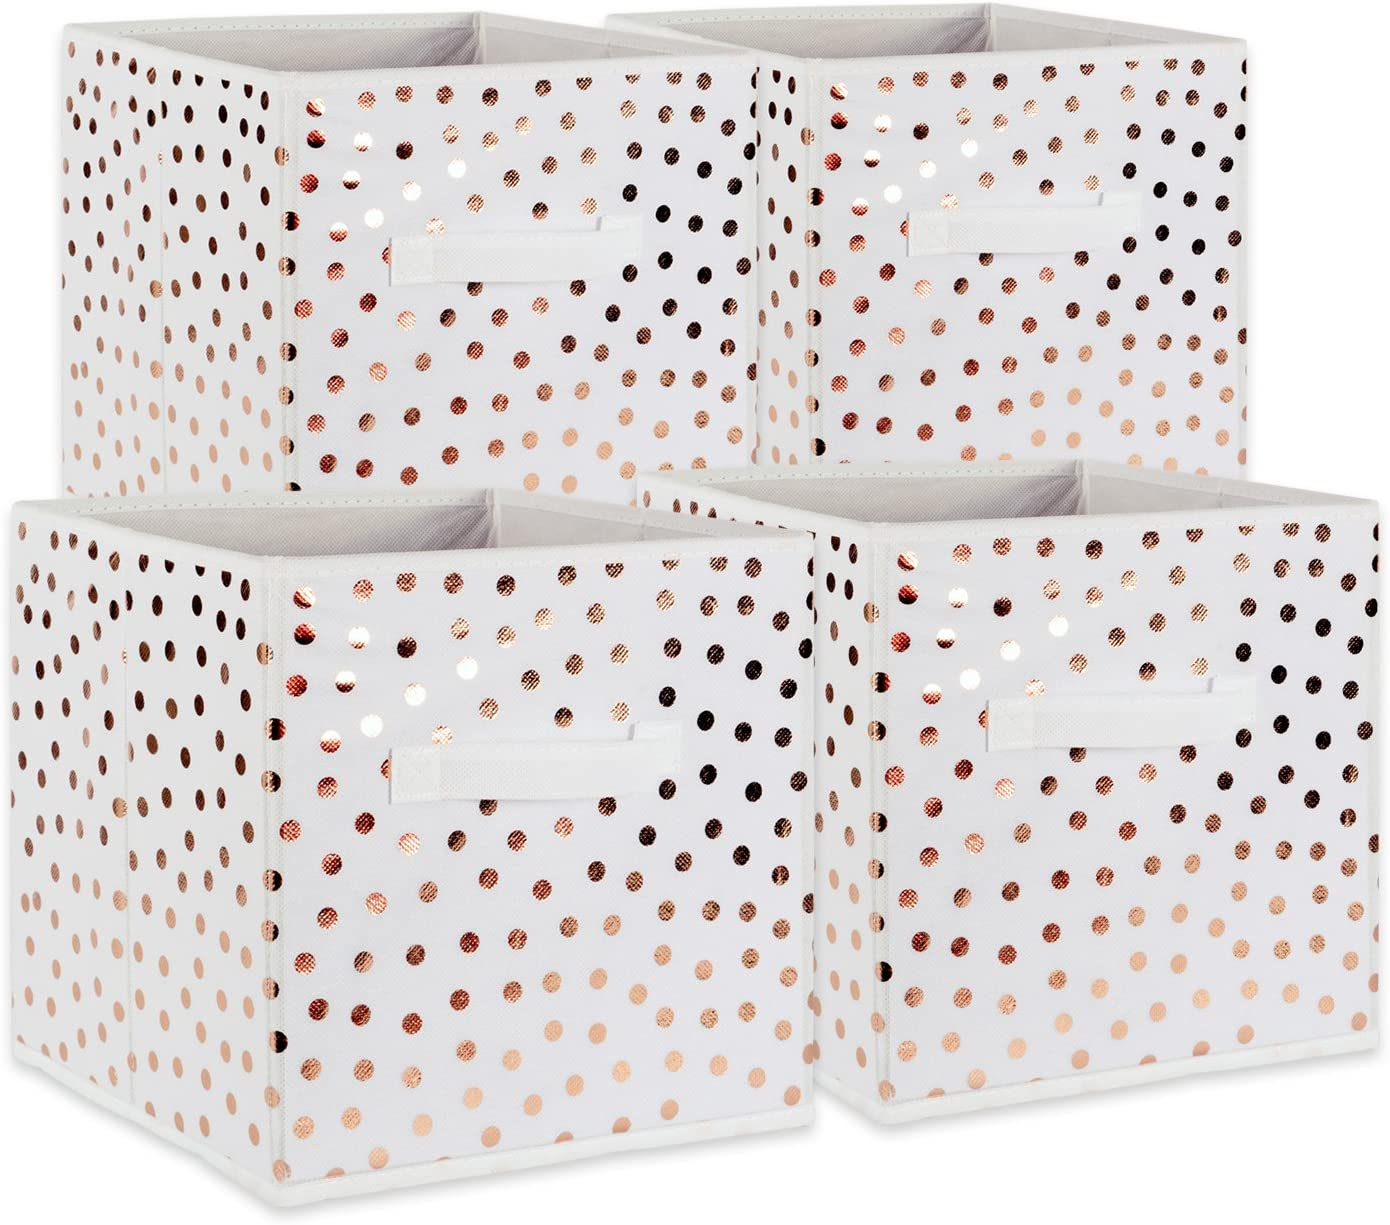 "DII Fabric Storage Bins for Nursery, Offices, & Home Organization, Containers Are Made To Fit Standard Cube Organizers (11x11x11"") White with Copper Dots - Set of 4"